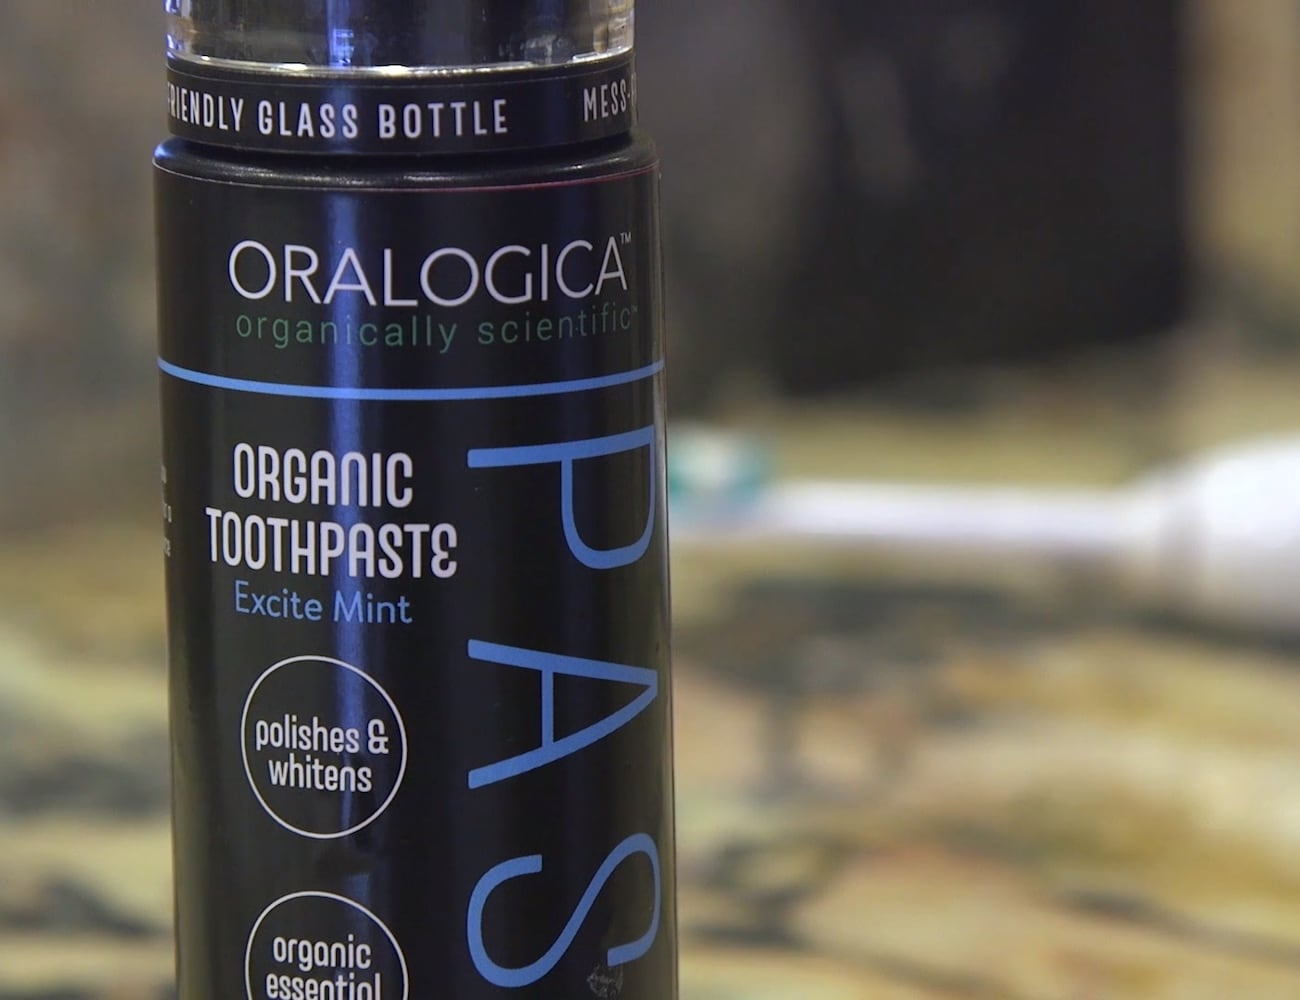 ORALOGICA Organic Oral Care Products